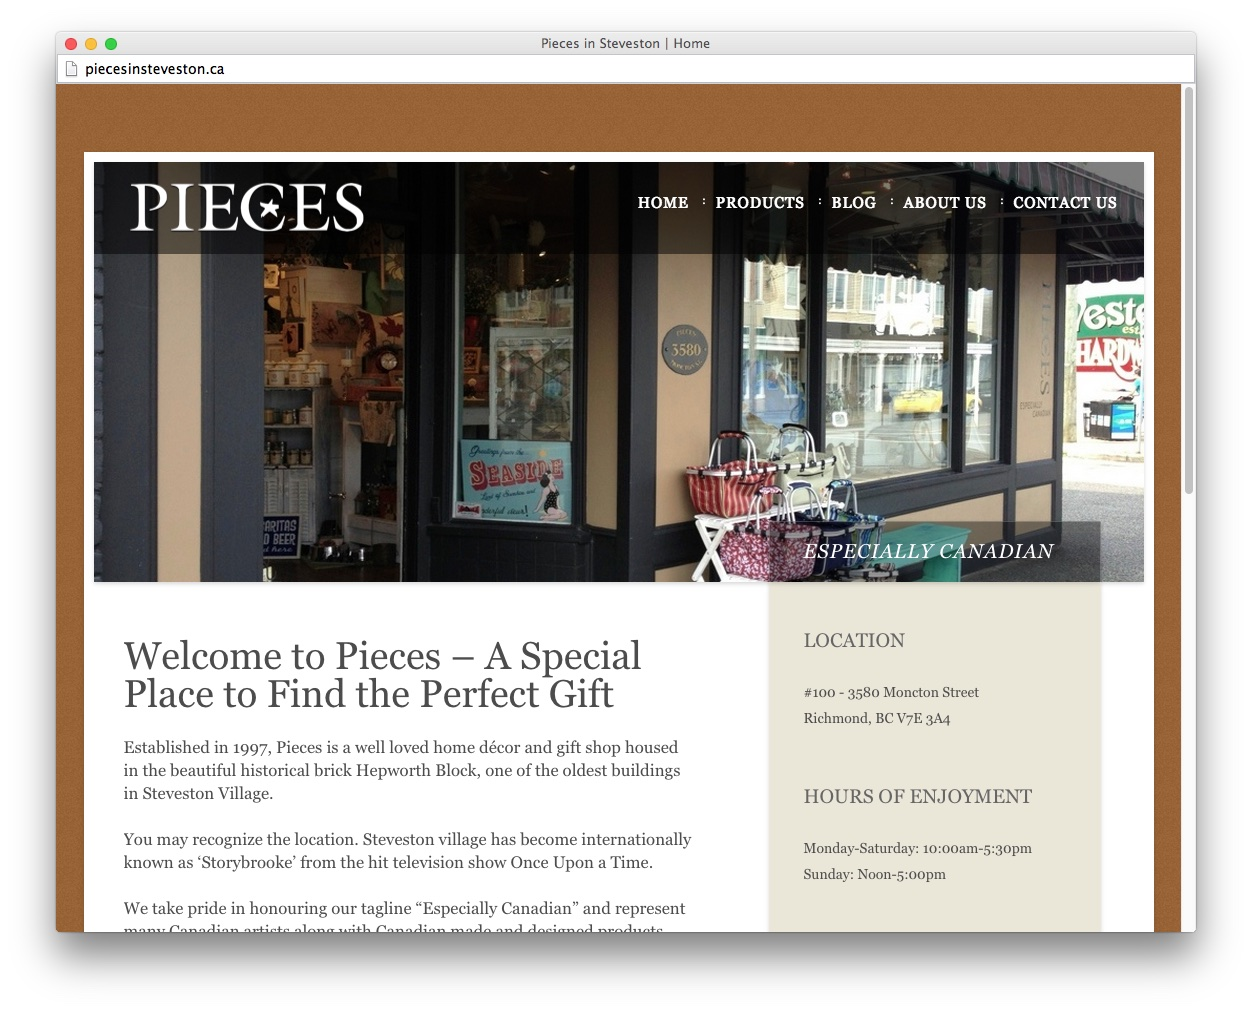 Pieces in Steveston